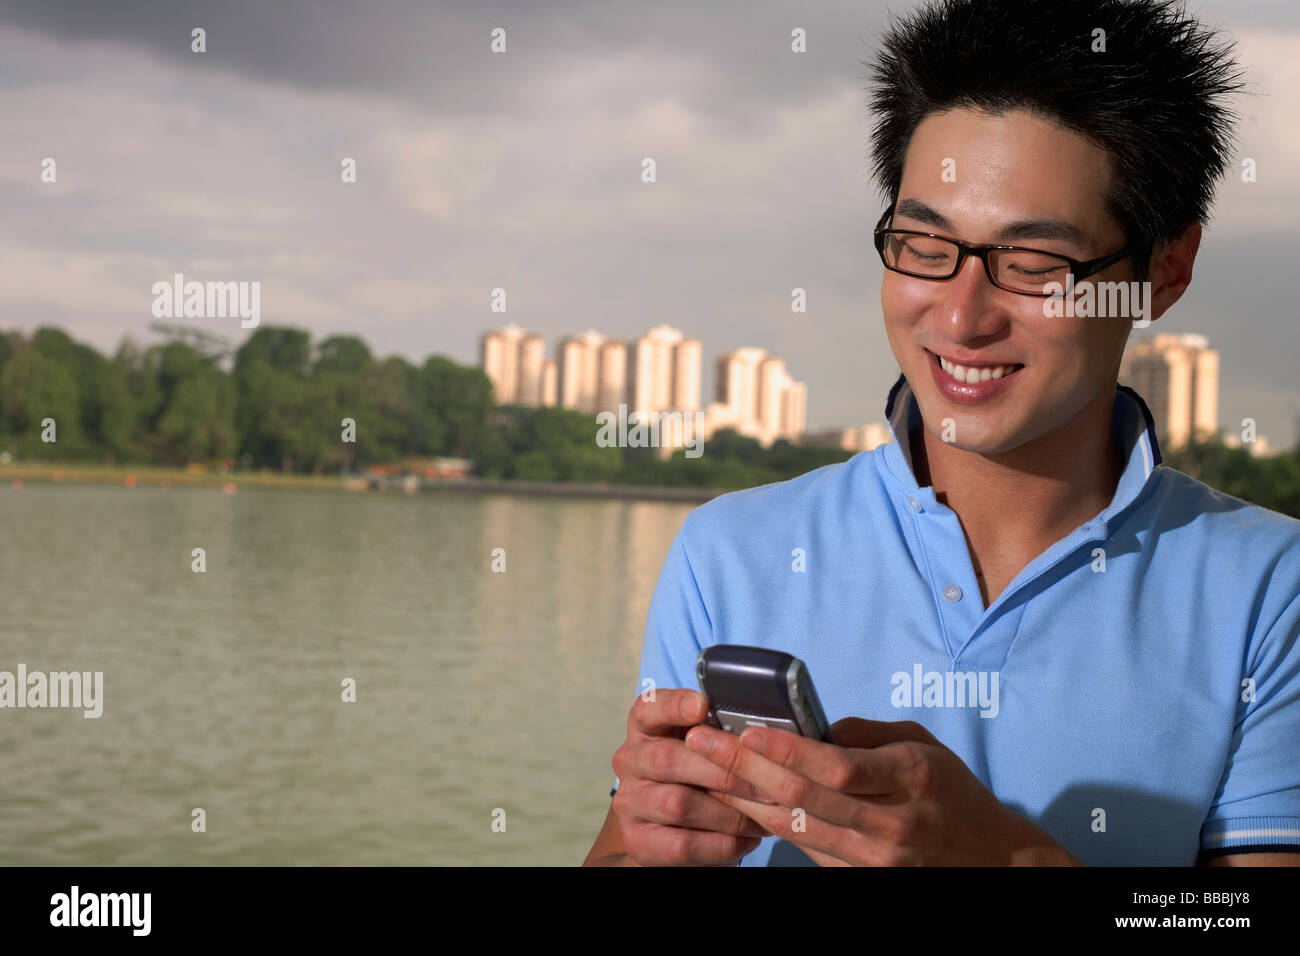 Man looking at mobile phone, body of water and buildings in the background - Stock Image